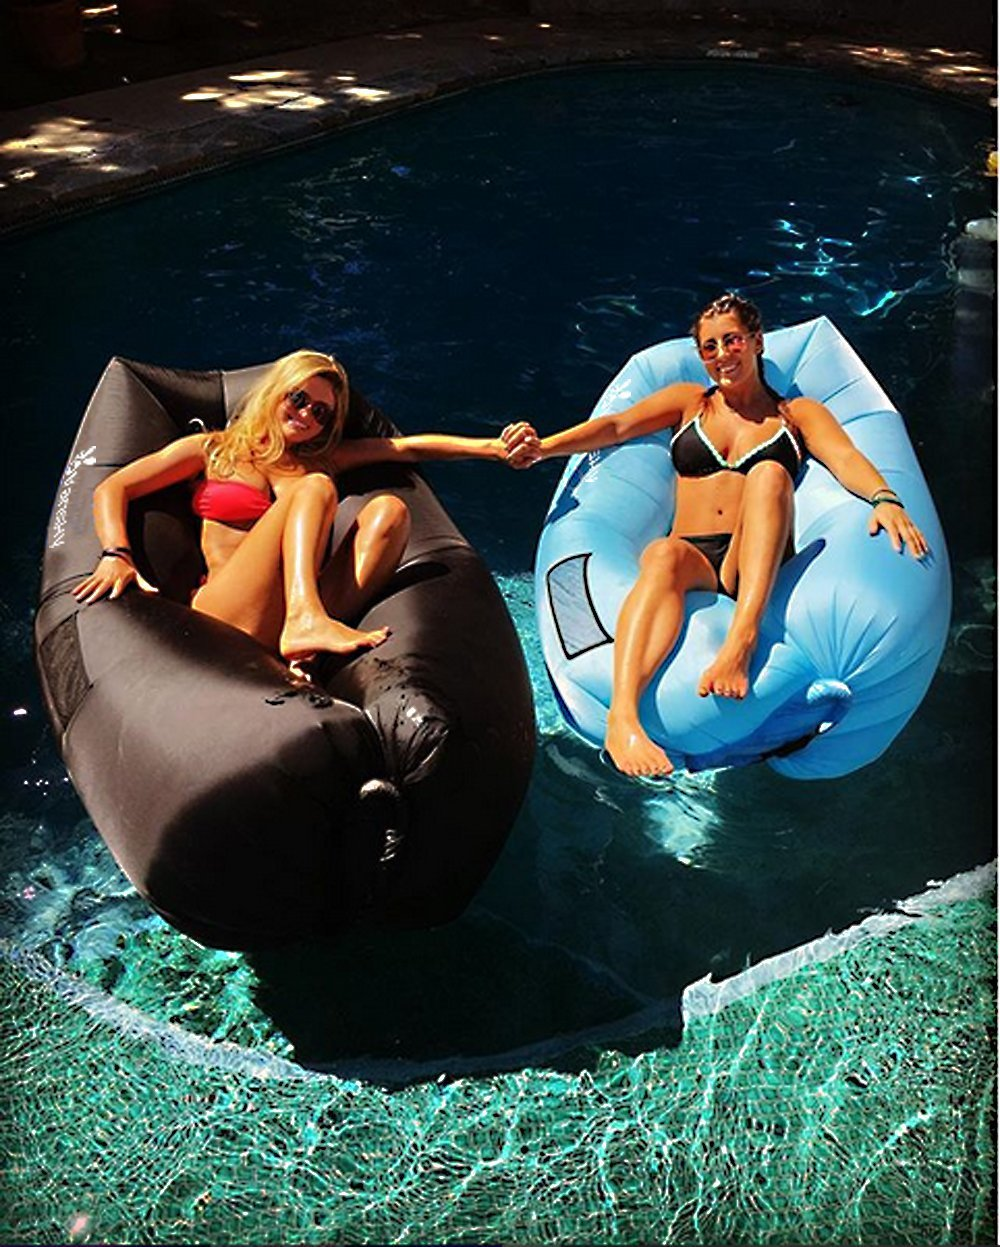 Outdoor or Indoor Inflatable Chair for Camping,Beach,Park,Backyard Vansky Inflatable Lounger Inflatable Couch Hammock Portable Air Chair Air Filled Beach Lounger Nylon Fabric Hangout Sofa Bag